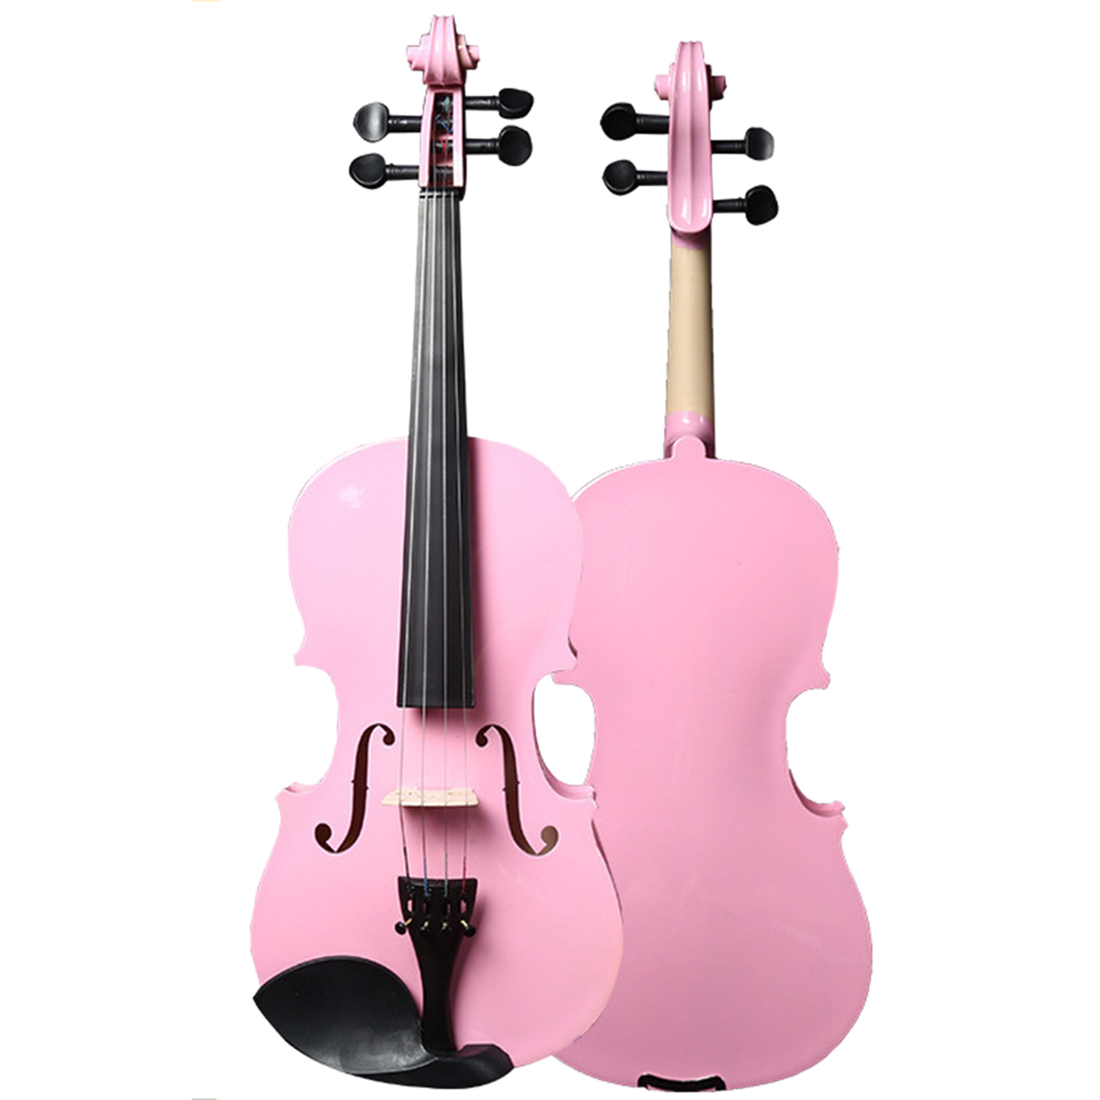 Basswood Beginner Violin Musical Instrument for 160cm Adult 135cm Children 2019 Educational Instrument Violin Gift image